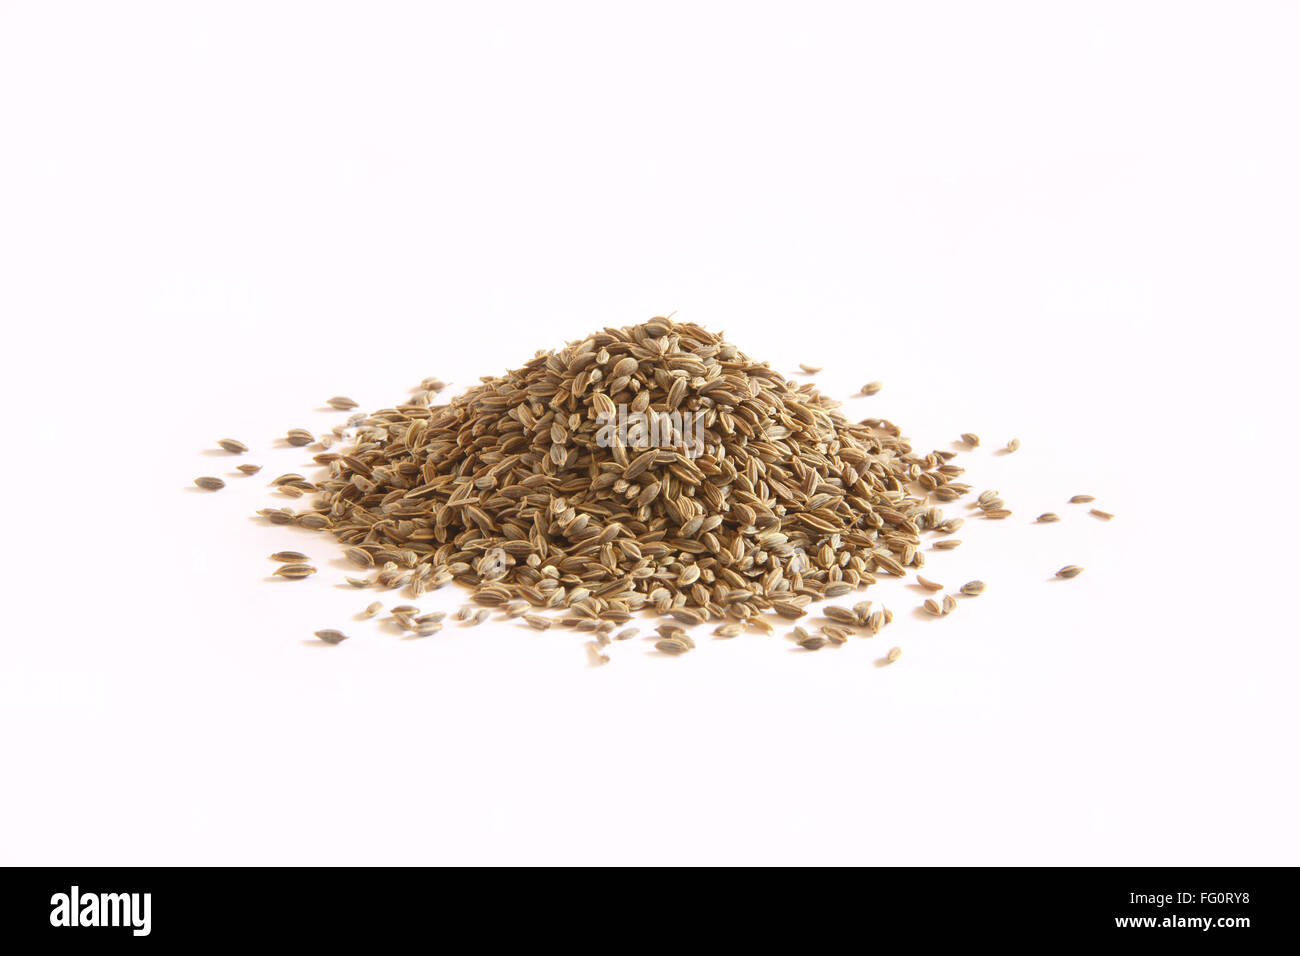 Indian spice , Dill Sowa Anethum sowa on white background - Stock Image